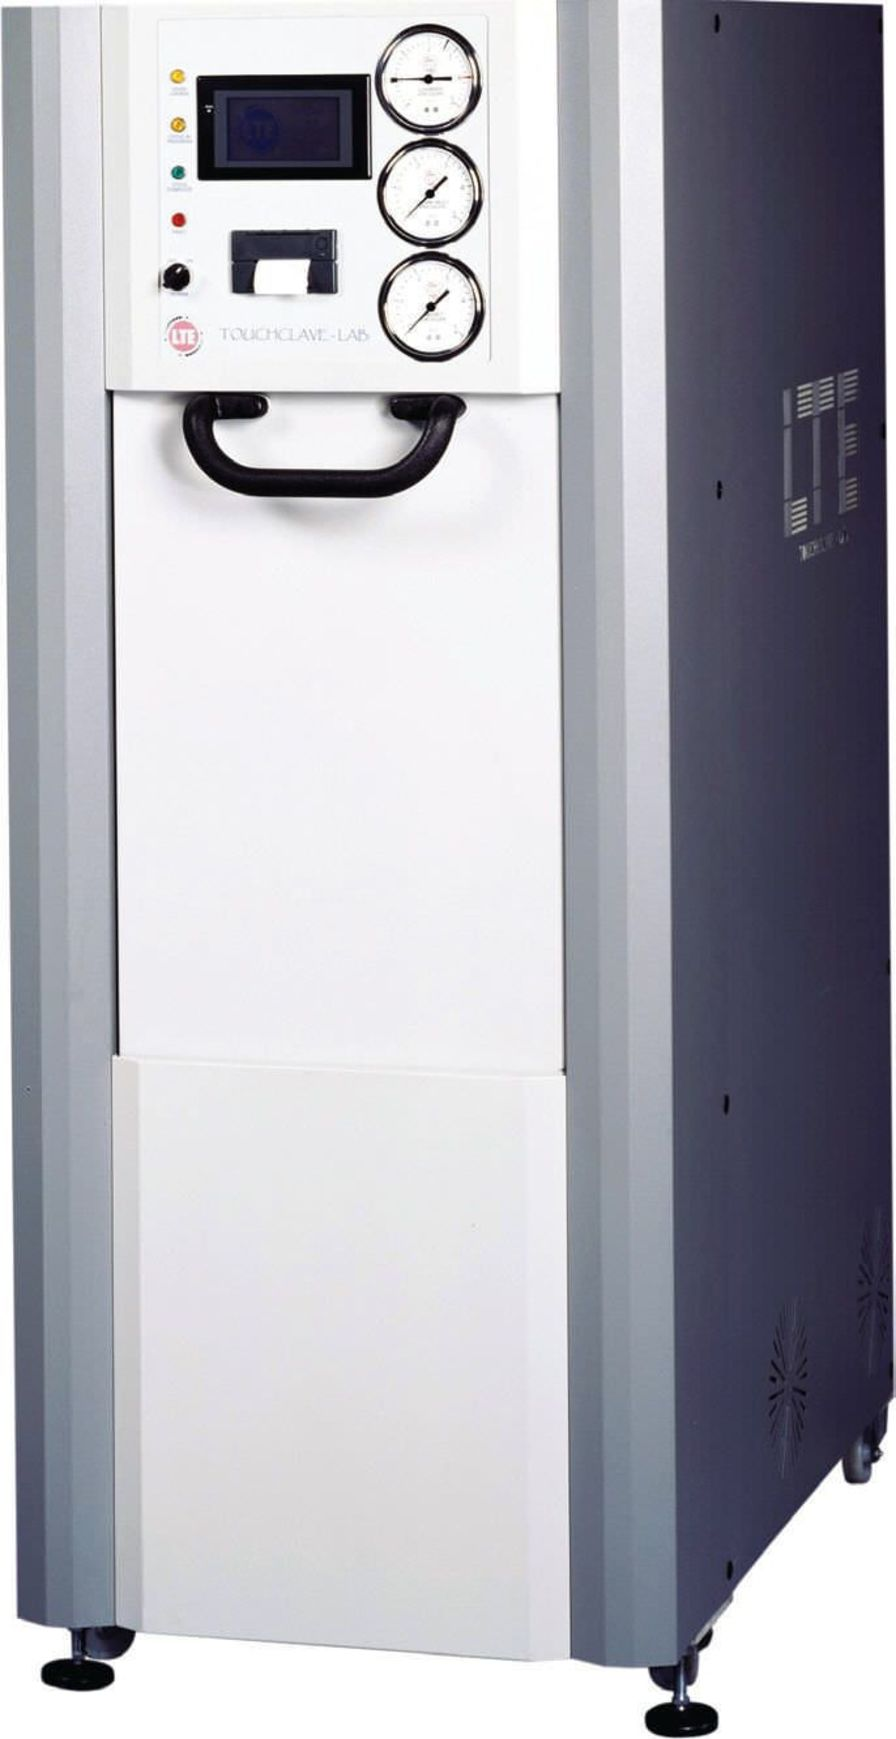 Laboratory autoclave TOUCHCLAVE - PL SERIES LTE Scientific